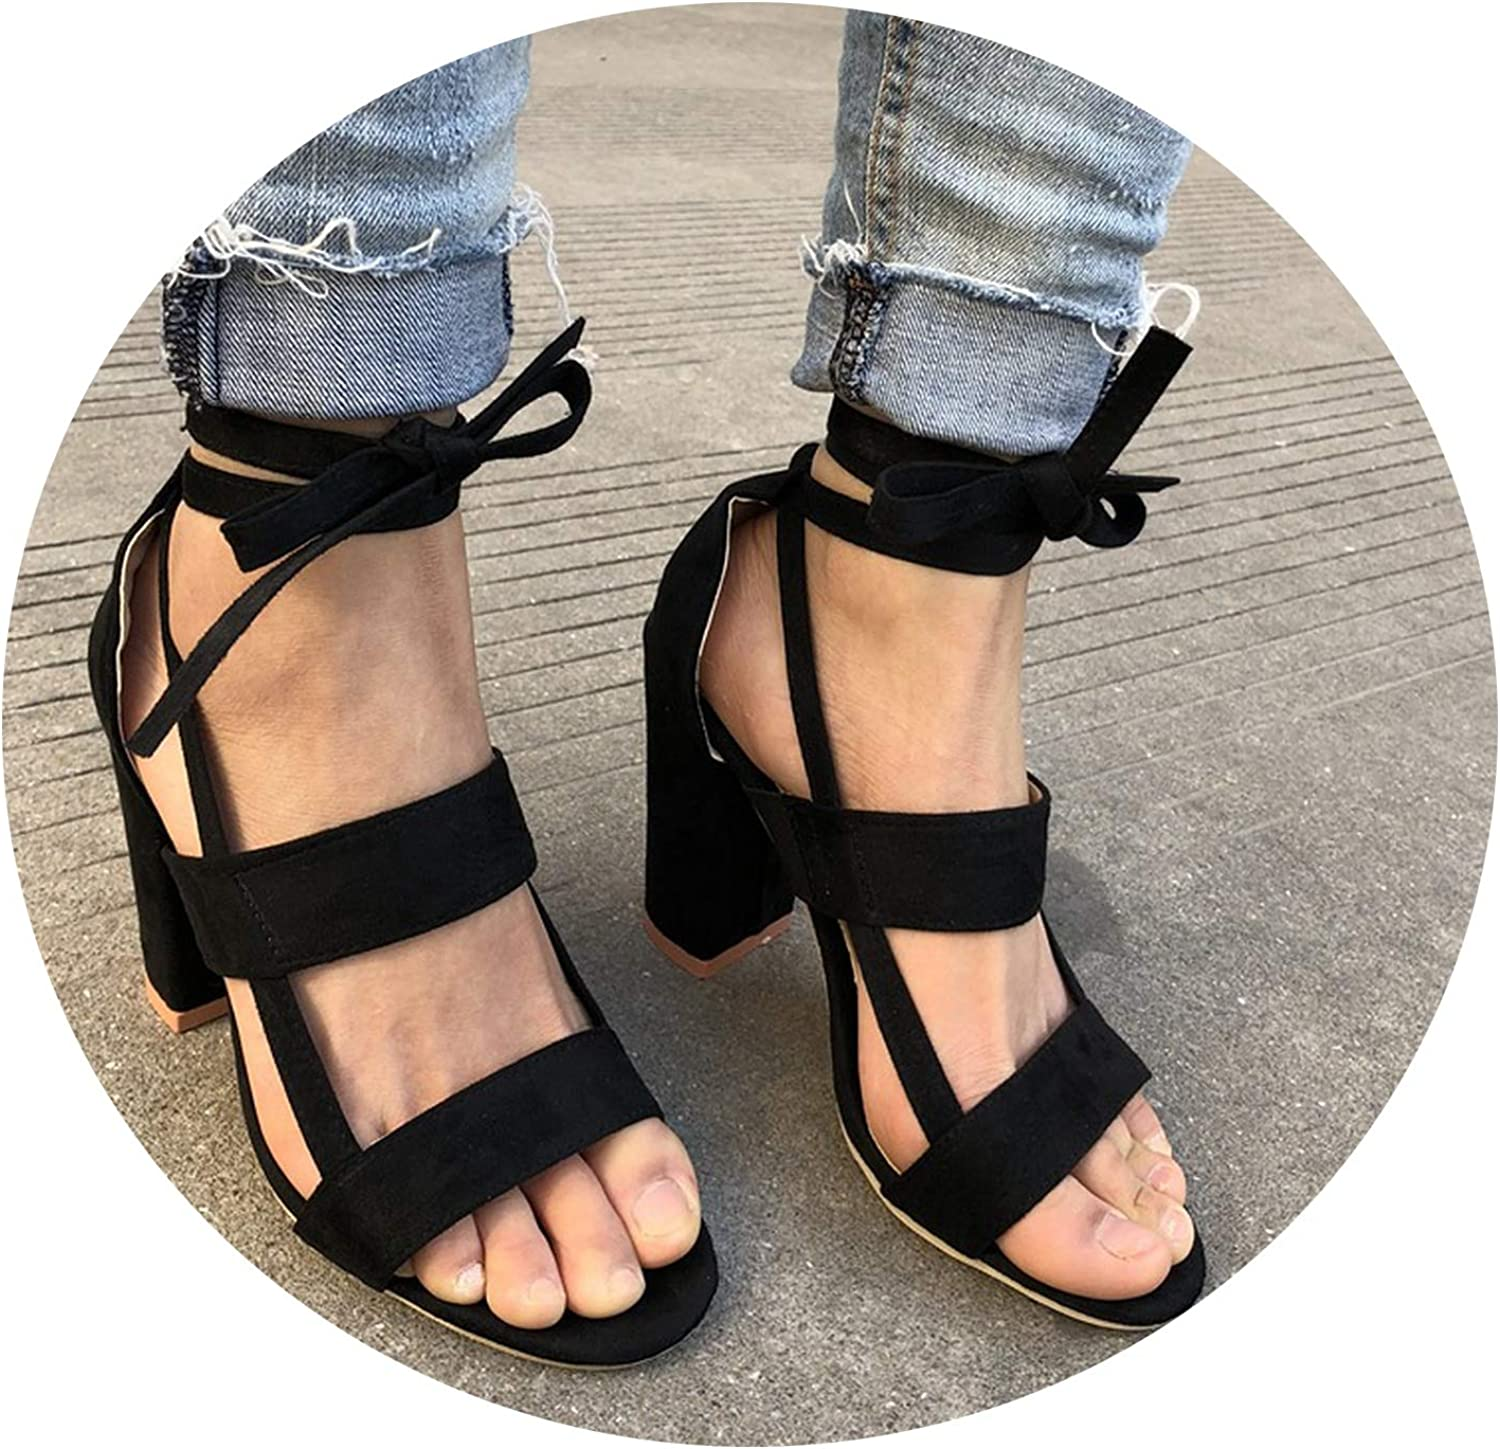 Plus Size Female Ankle Strap High Heels Flock shoes Thick Heel,Black-D2312,10.5,United States